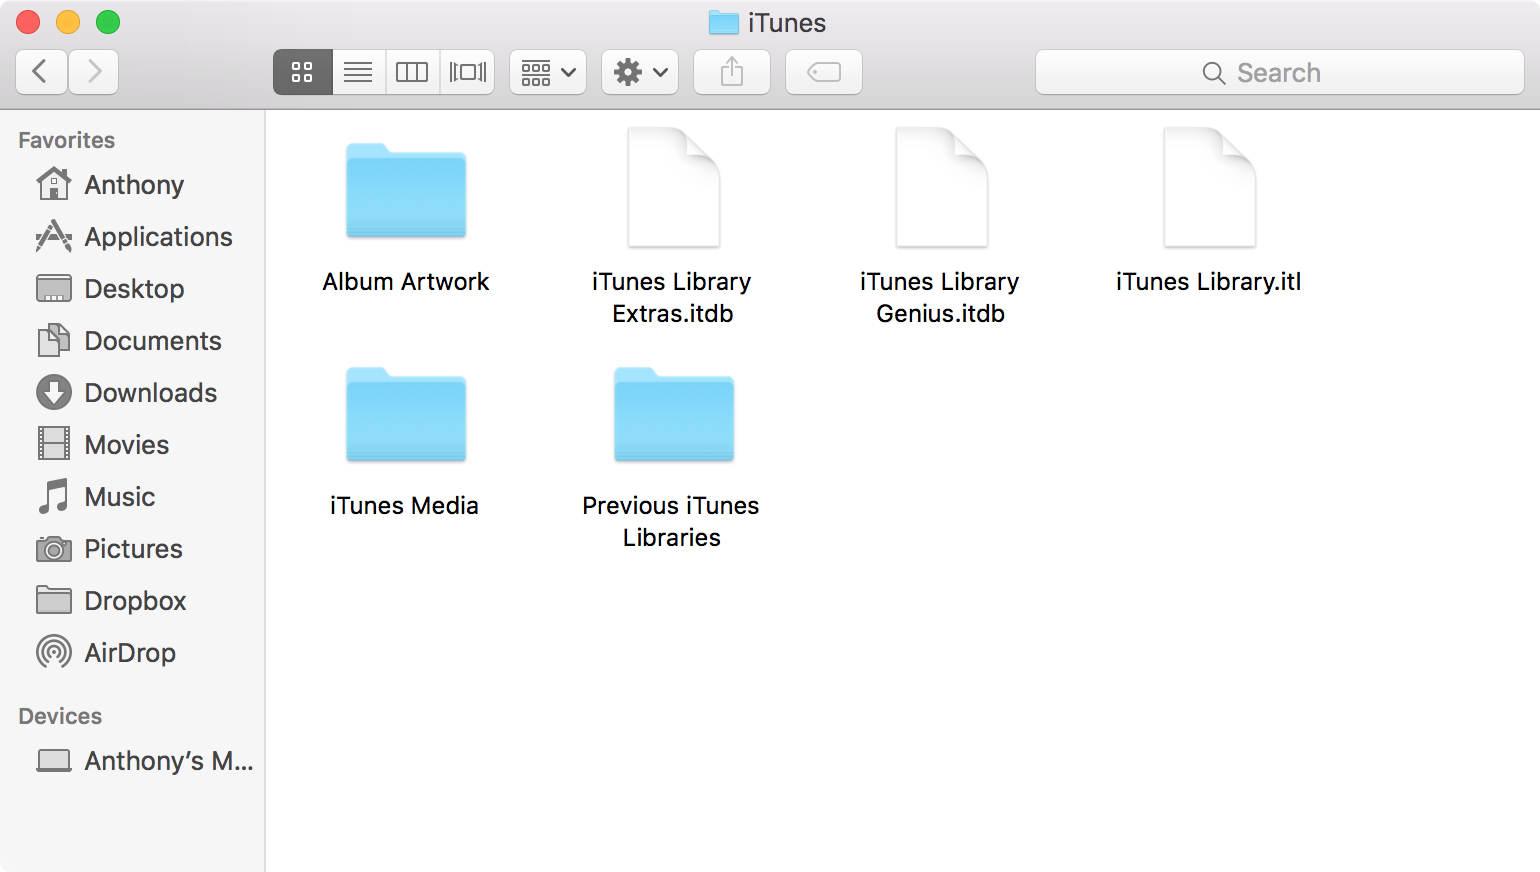 iTunes folder in Finder on Mac